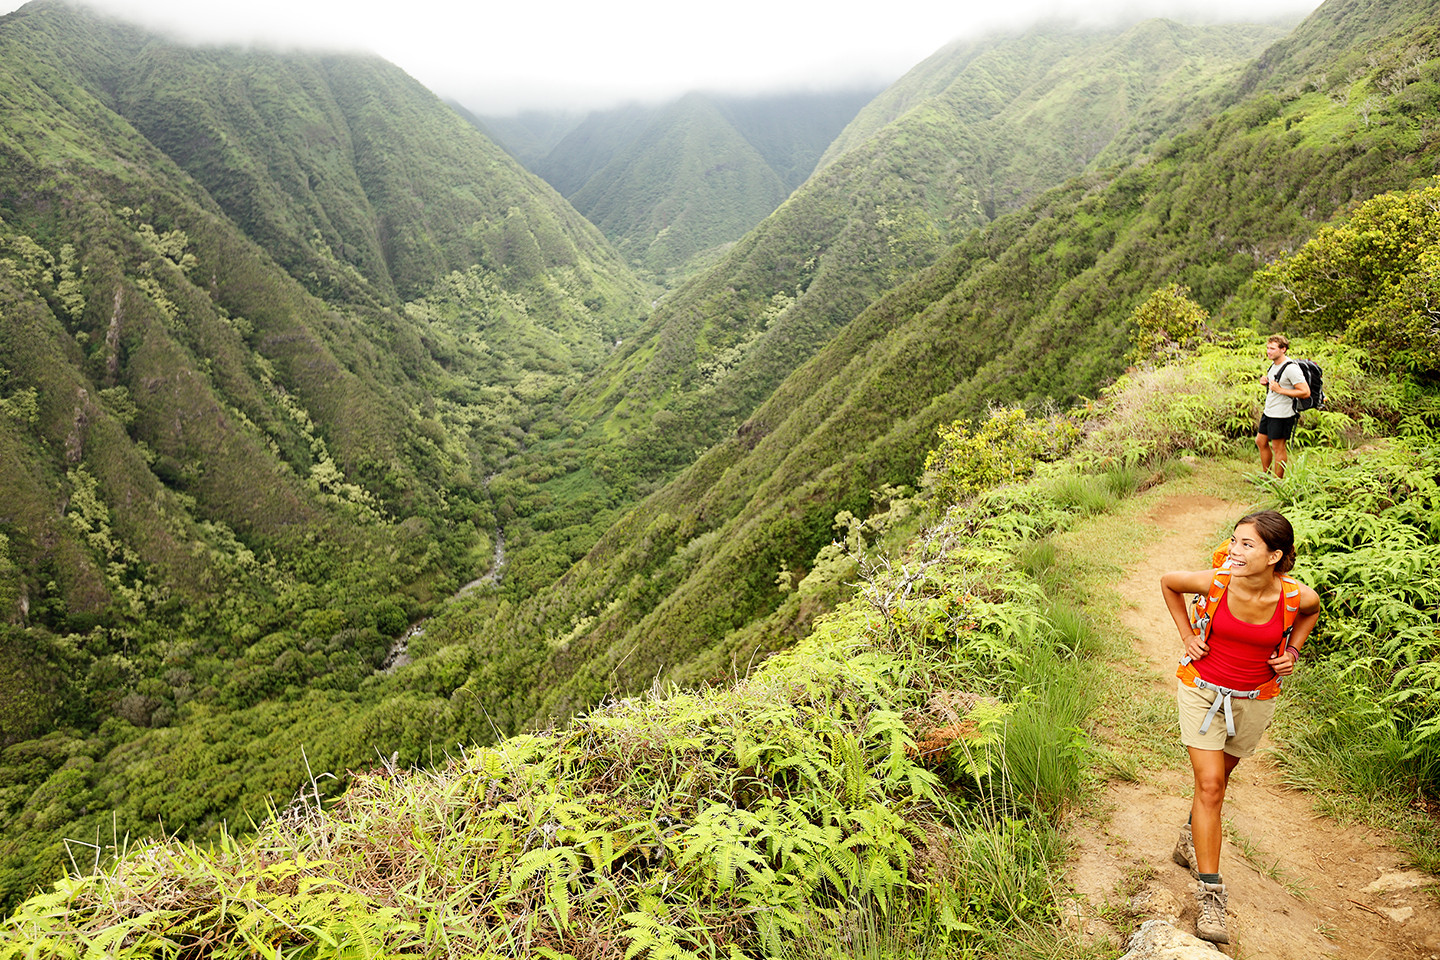 Two hikers walking along a mountain trail in Hawaii: a woman in a red tank top and beige shorts, and a man in a blue shirt and black shorts.